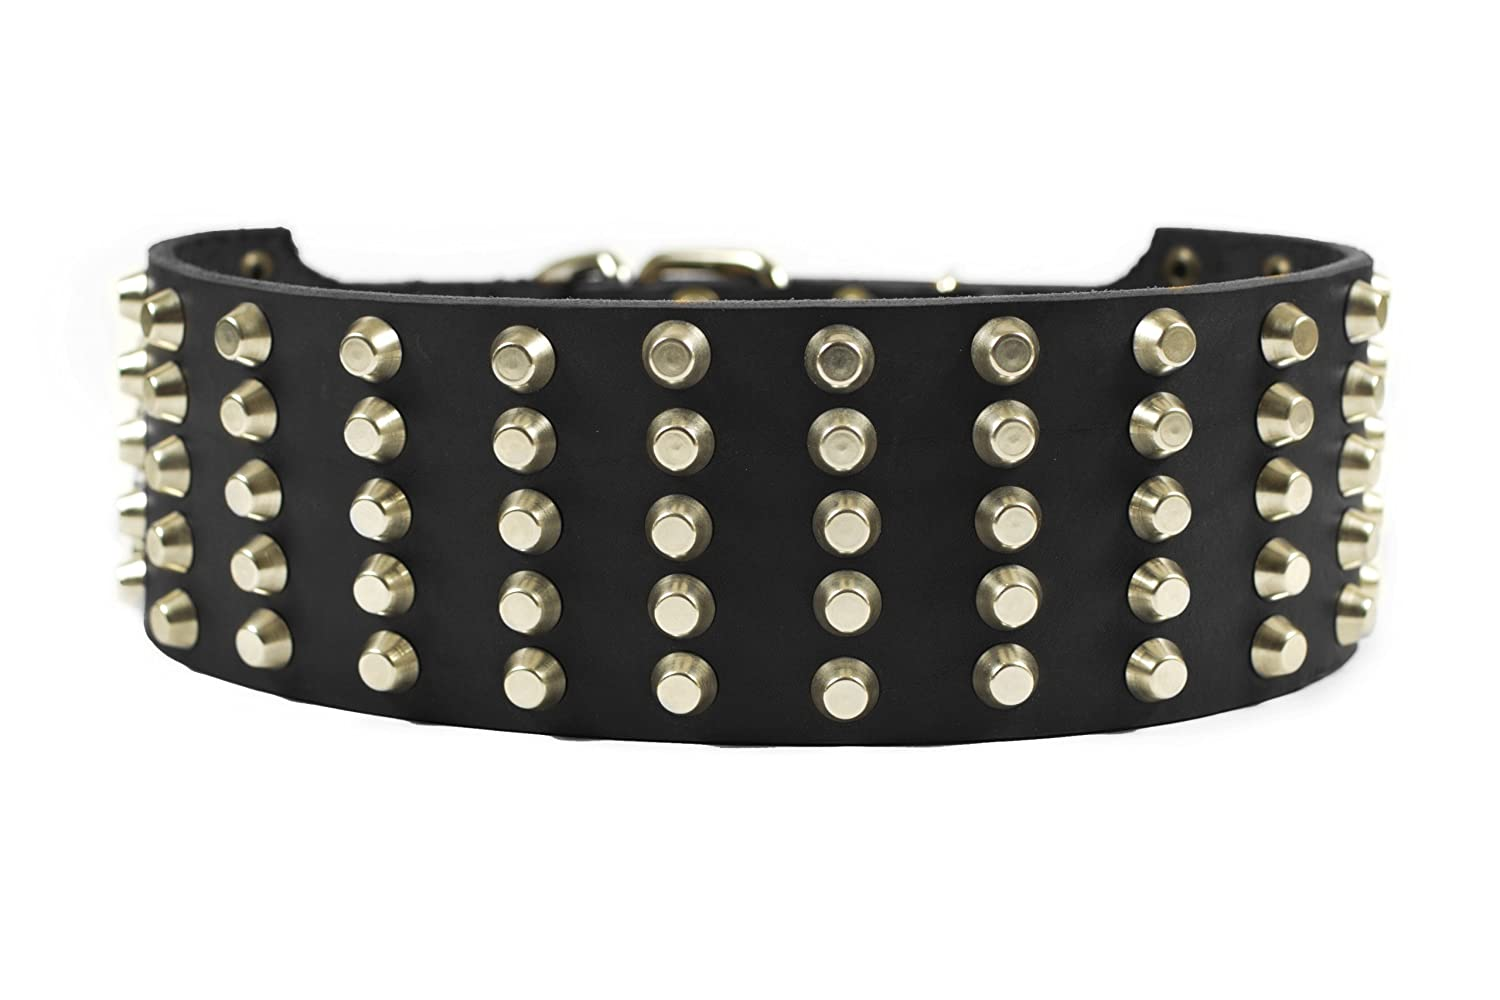 Dean and Tyler Wide Stud , Extra Wide Leather Dog Collar with Strong Nickel Studs Black Size 28-Inch by 2-3 4-Inch Fits Neck 26-Inch to 30-Inch